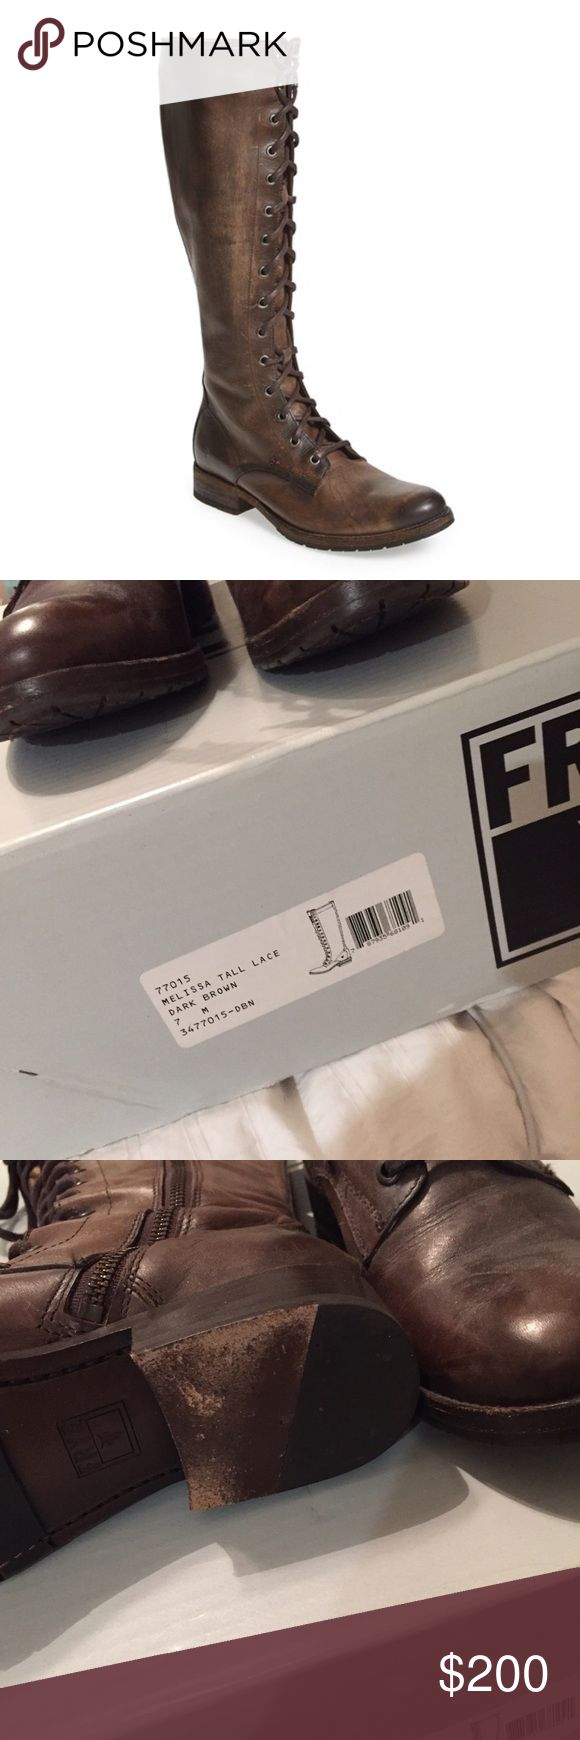 Frye Melissa Tall Lace Up Boots in Dark Brown Worn a few times, slight scuffing on bottom sole | Frye Melissa Tall Lace Up Boots in Dark Brown | Women's US 7 | No trades Frye Shoes Over the Knee Boots